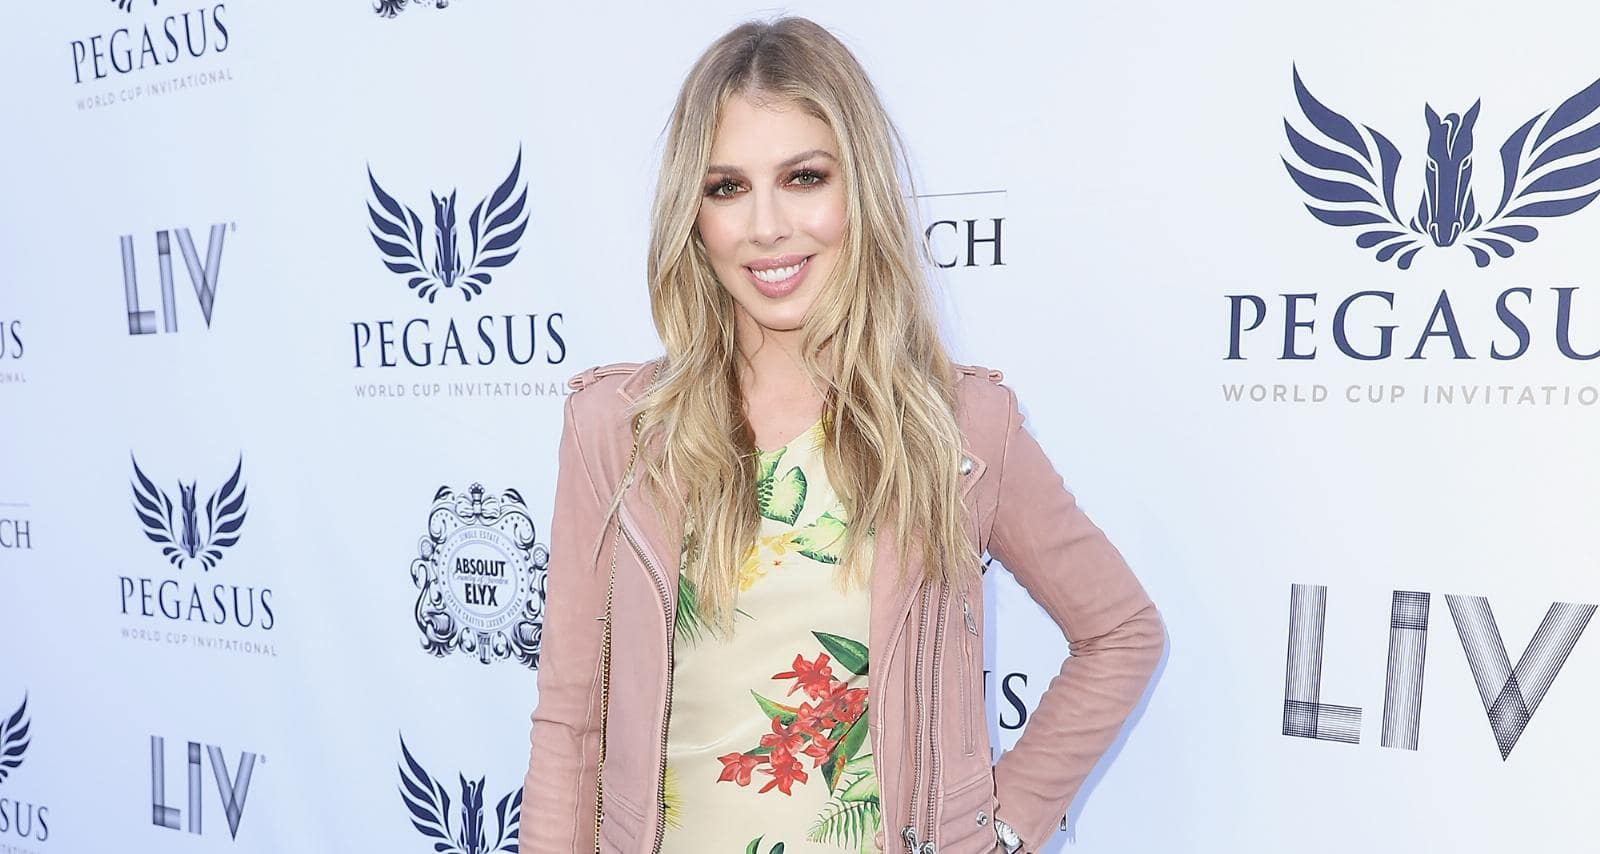 Hannah Selleck Wiki, Age, Family, Education, Equestrian and Facts About Tom Selleck's Daughter